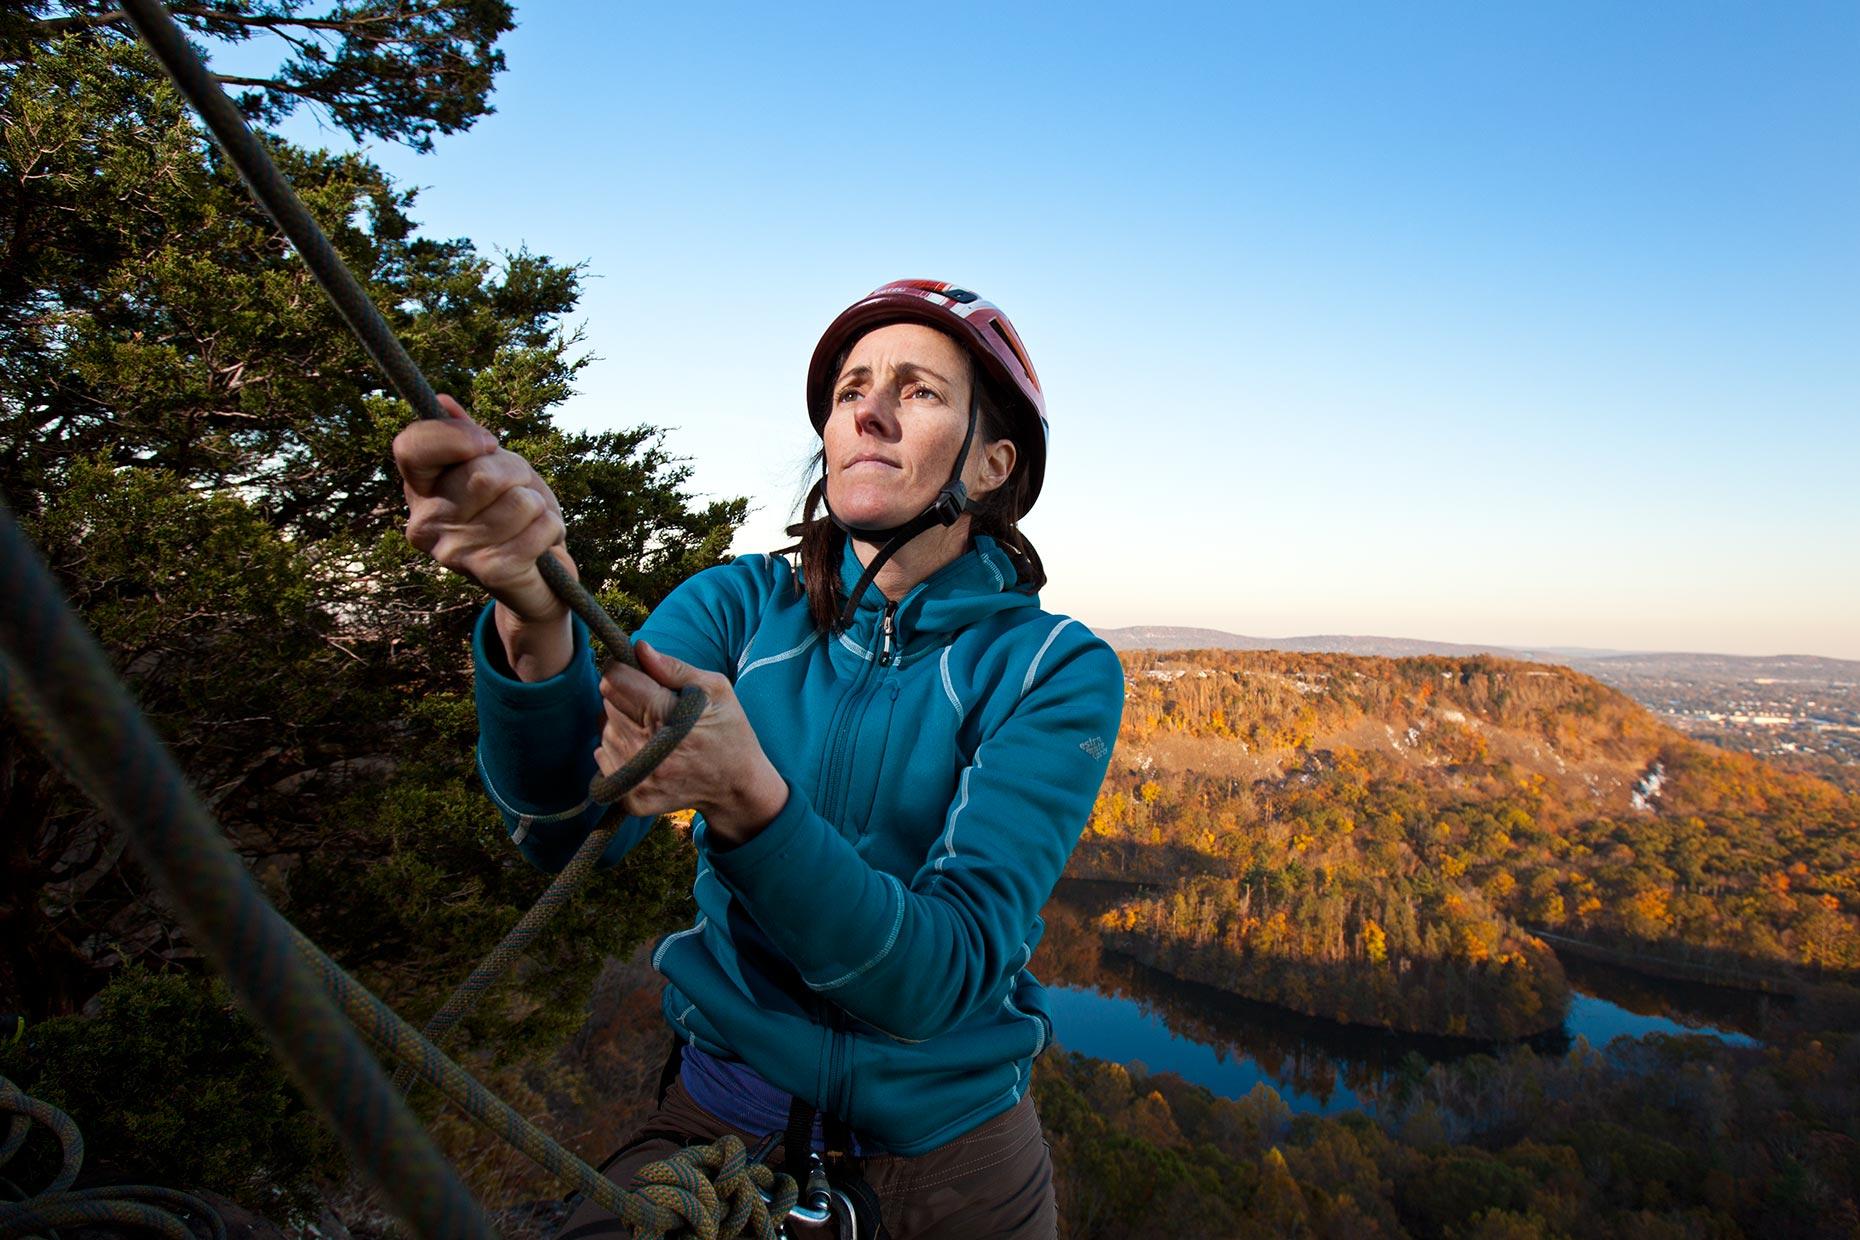 A middle aged woman pulls on a rope on top of a Connecticut cliff in winter